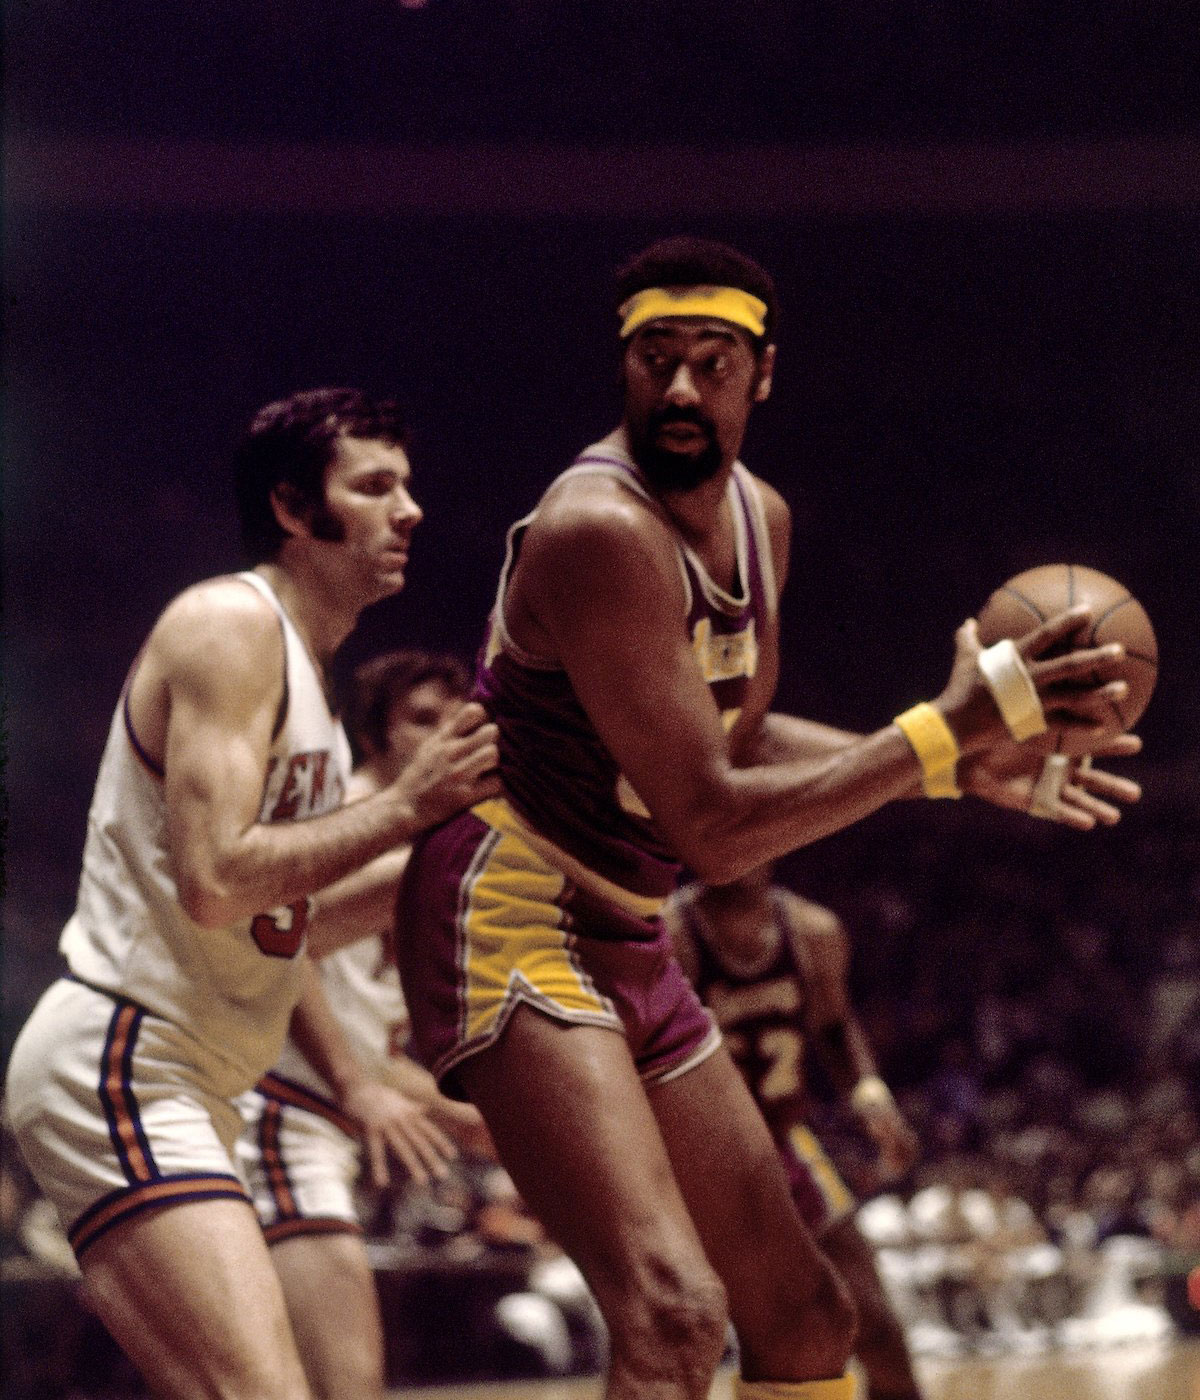 Wilt Chamberlain #13 of the Los Angeles Lakers posts up against the New York Knicks during a game played in 1972 at Madison Square Garden in New York, New York.